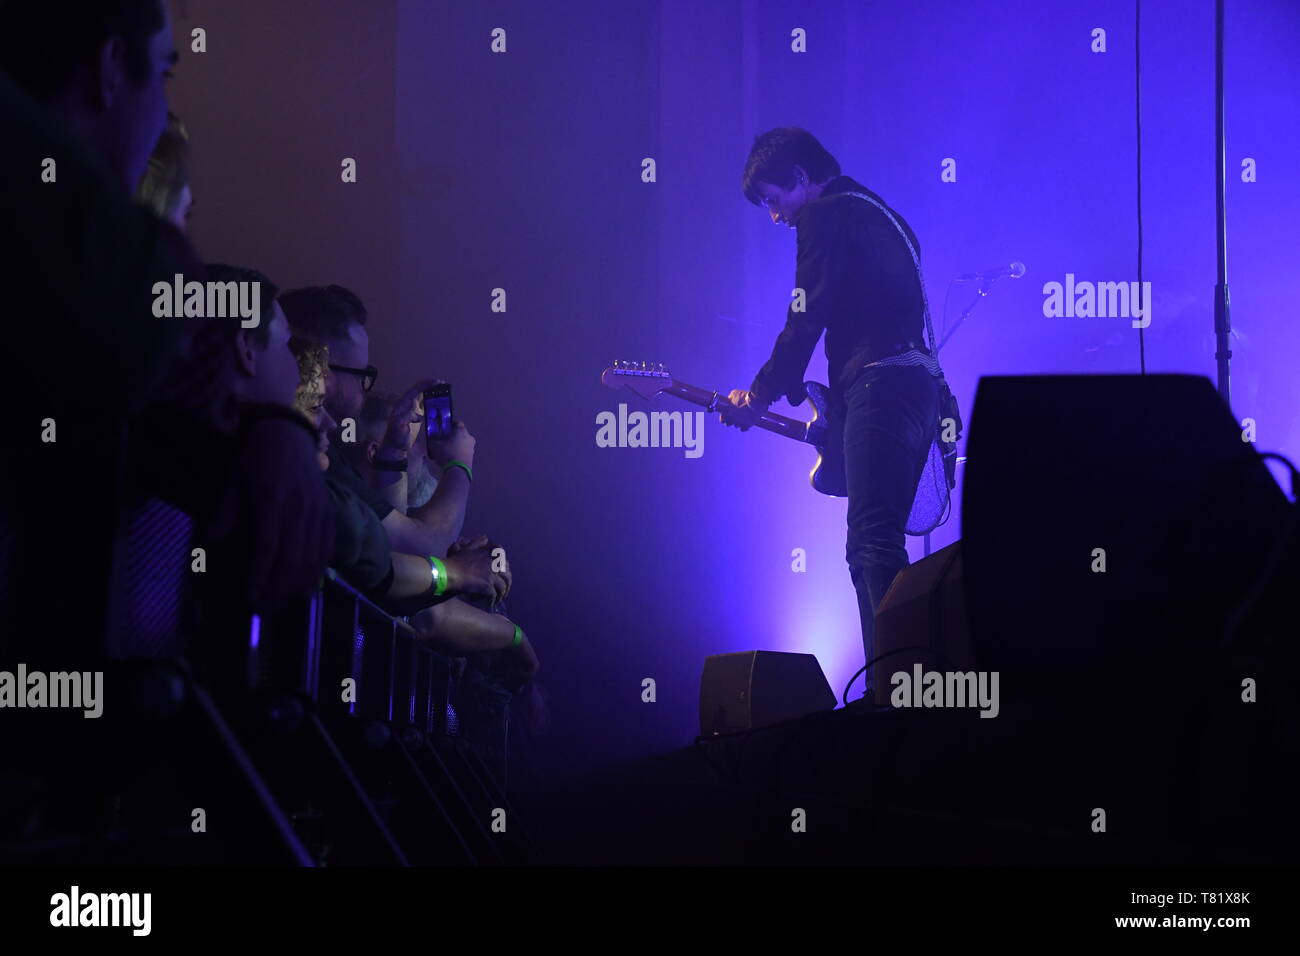 Singer, songwriter and guitarist Johnny Marr is shown performing on stage during a live concert appearance. - Stock Image